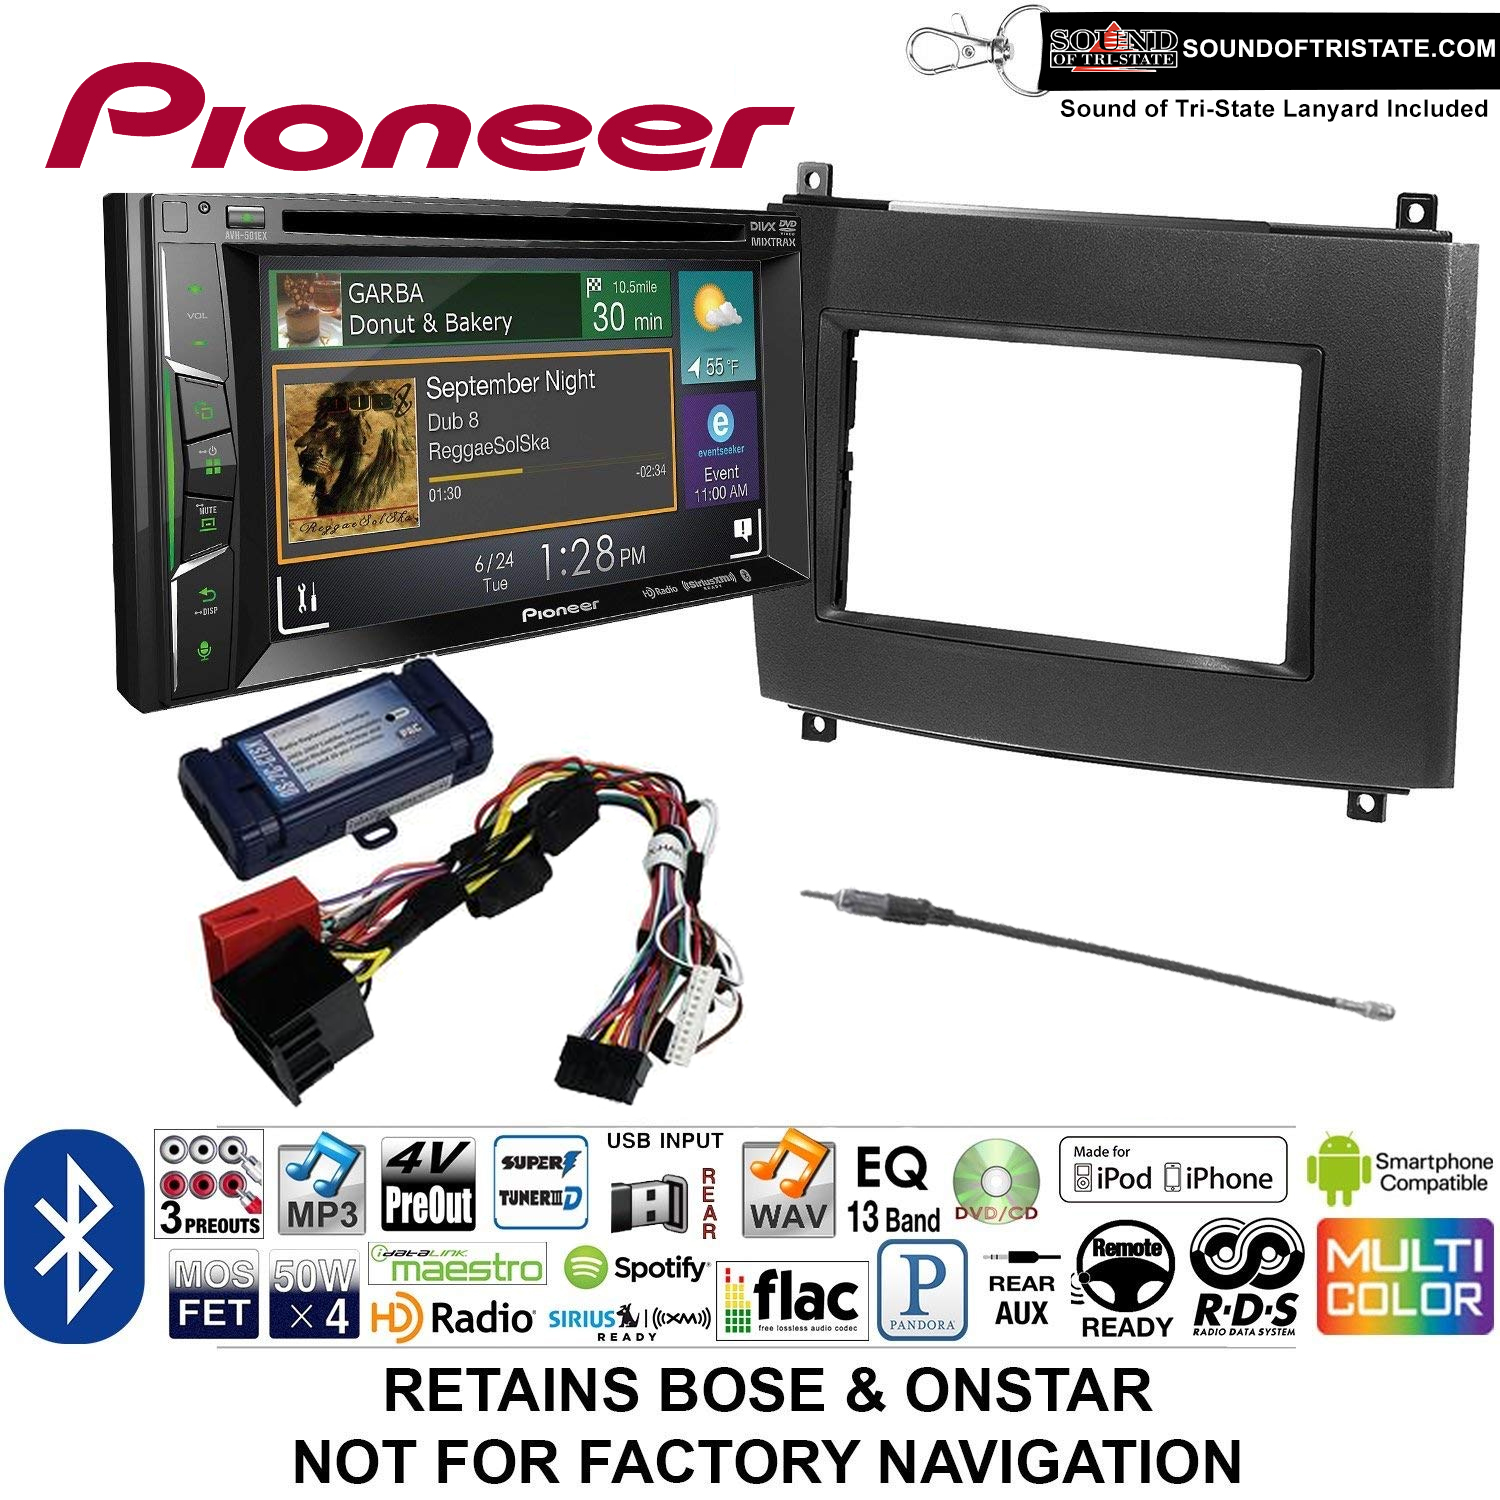 [SCHEMATICS_49CH]  Pioneer AVH-501EX Double Din Radio Install Kit with DVD/CD Player Bluetooth  Fits 2003-2007 Cadillac CTS, 2004-2006 SRX + Sound of Tri-State Lanyard -  Walmart.com - Walmart.com | Cadillac Cts 2007 Radio Wiring Harness |  | Walmart